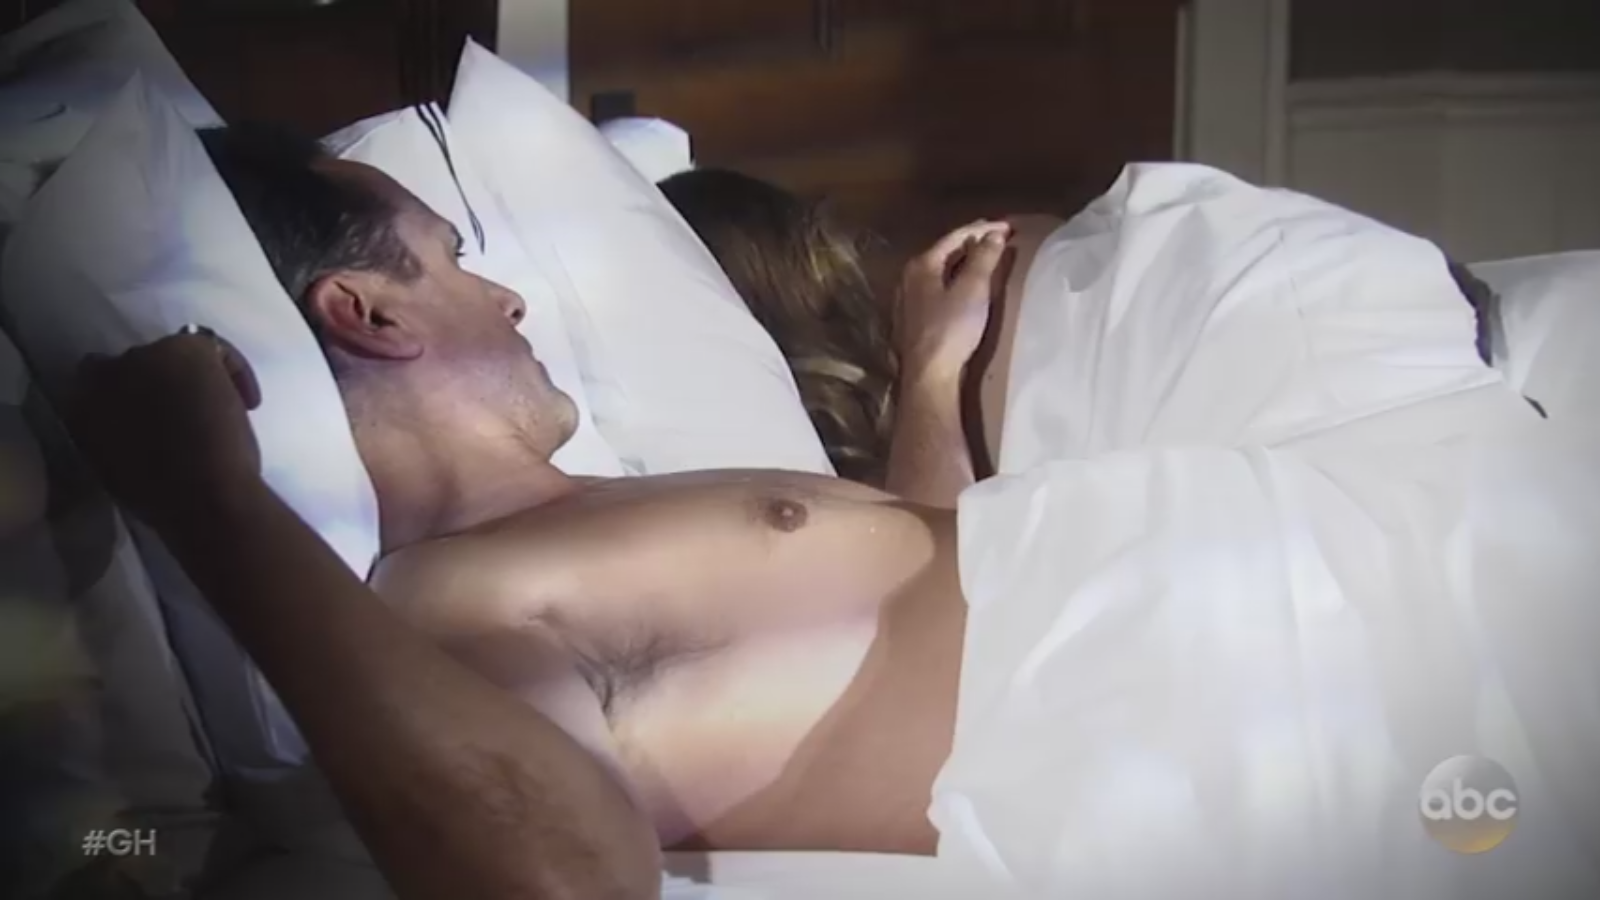 General Hospital Spoilers: Night of Passion for Nelle and Michael - Pregnant Aftermath Shatters Corinthos Family